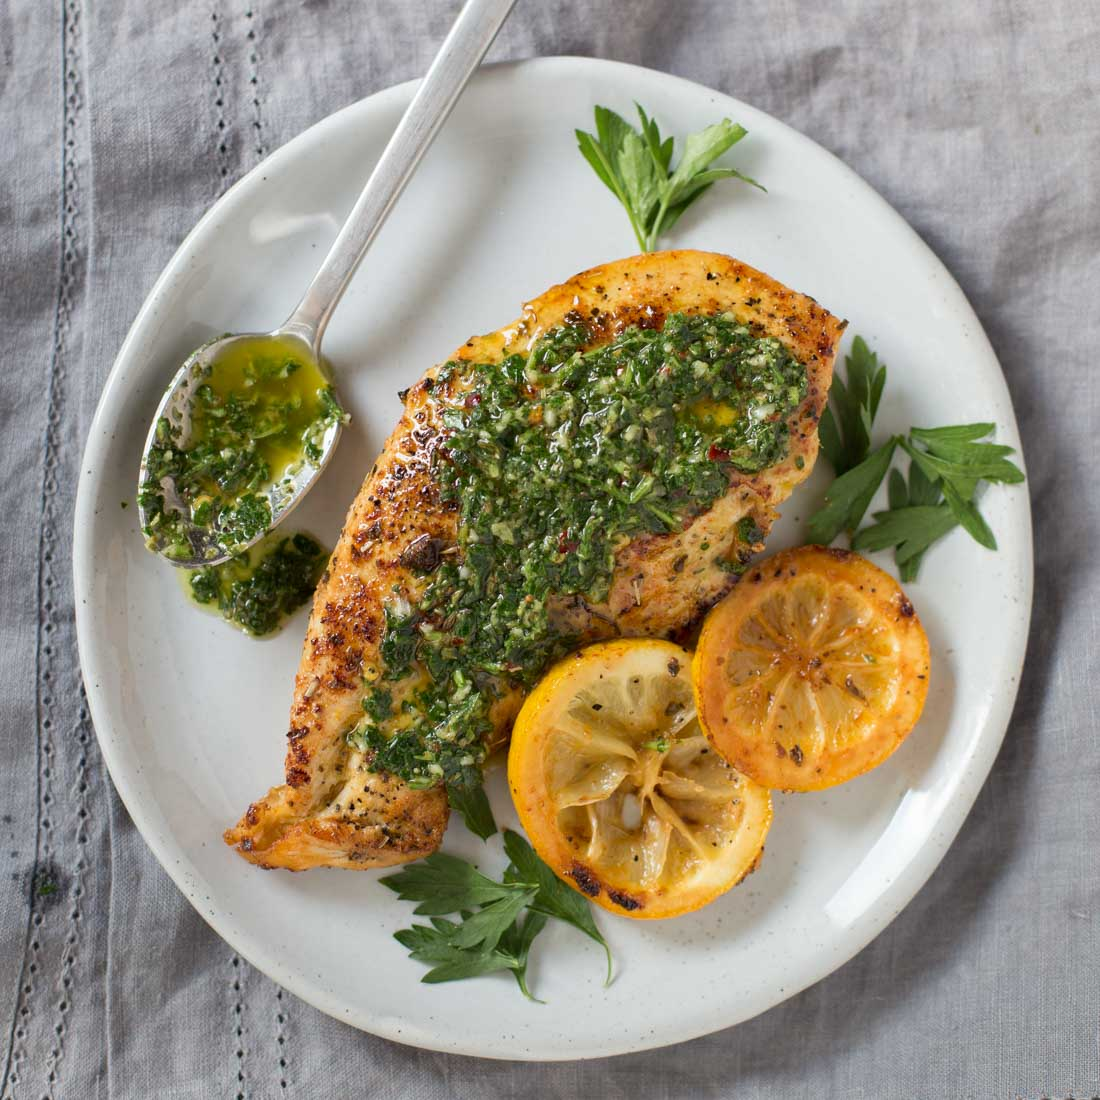 Chimichurri chicken with sauce on plate